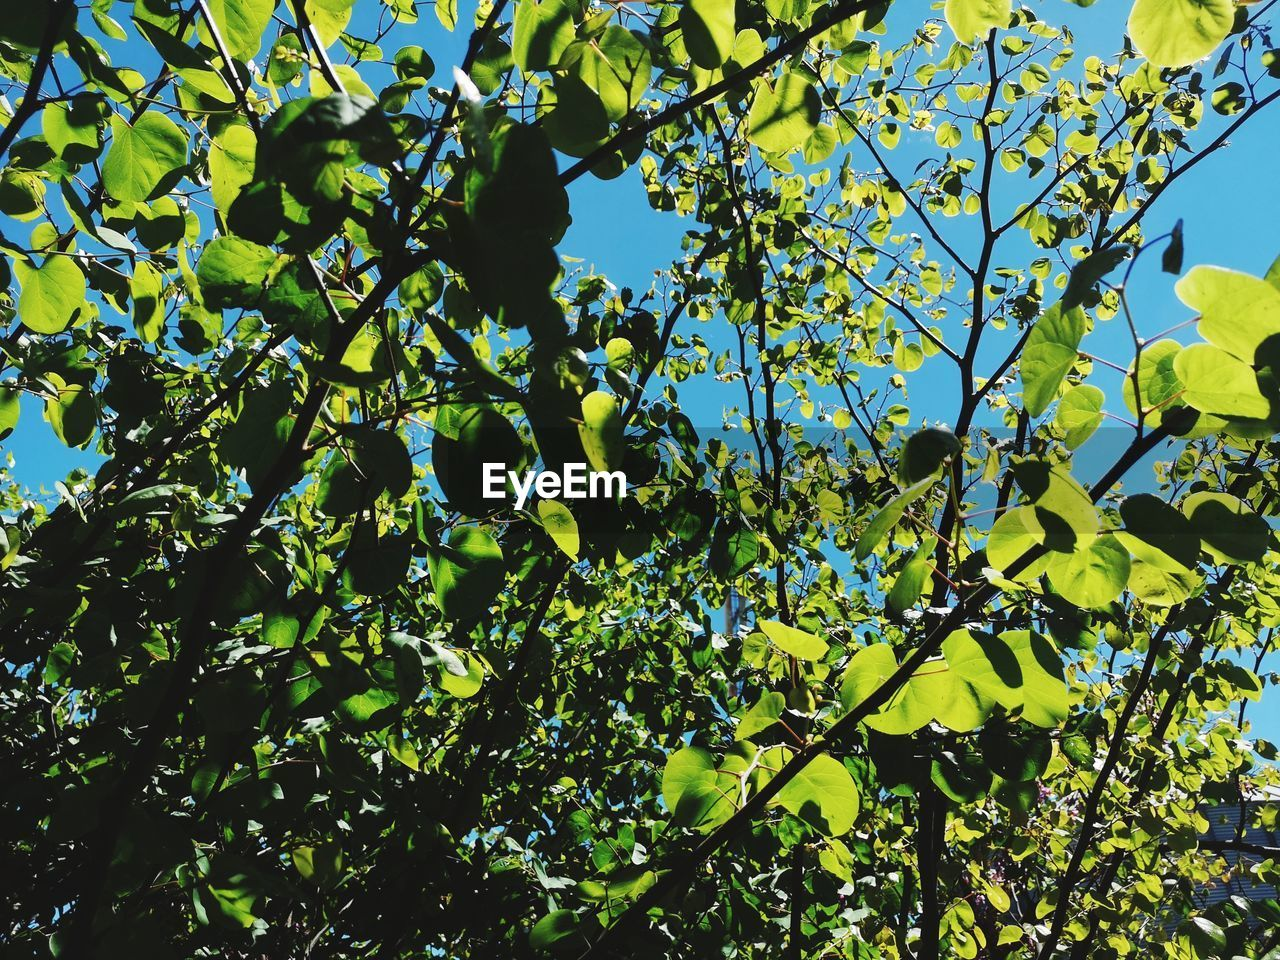 growth, plant, low angle view, leaf, plant part, tree, nature, sky, sunlight, green color, no people, beauty in nature, day, branch, outdoors, freshness, tranquility, yellow, sunny, flowering plant